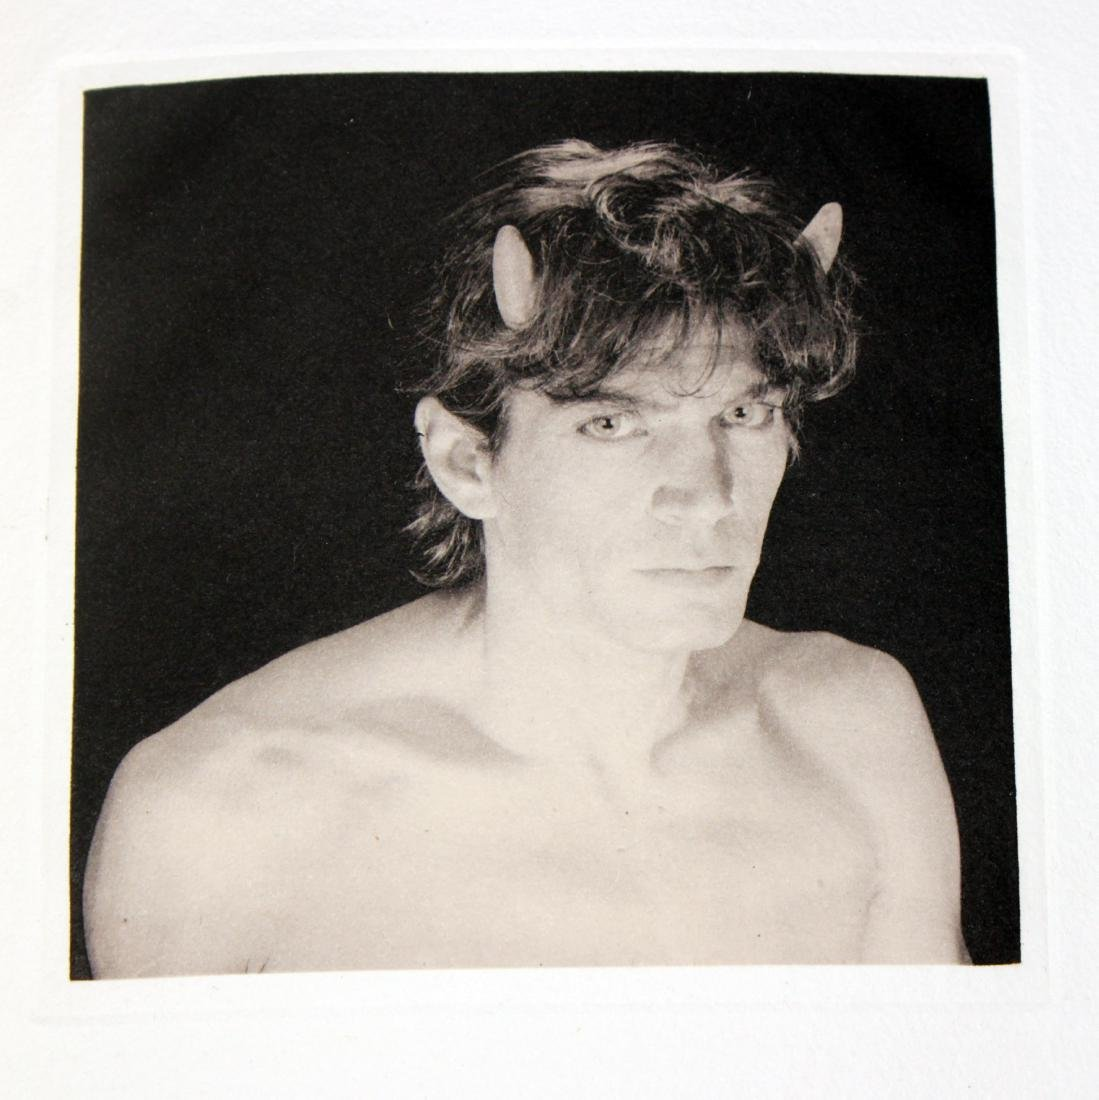 Robert Mapplethorpe - A Season in Hell (Leather Bound